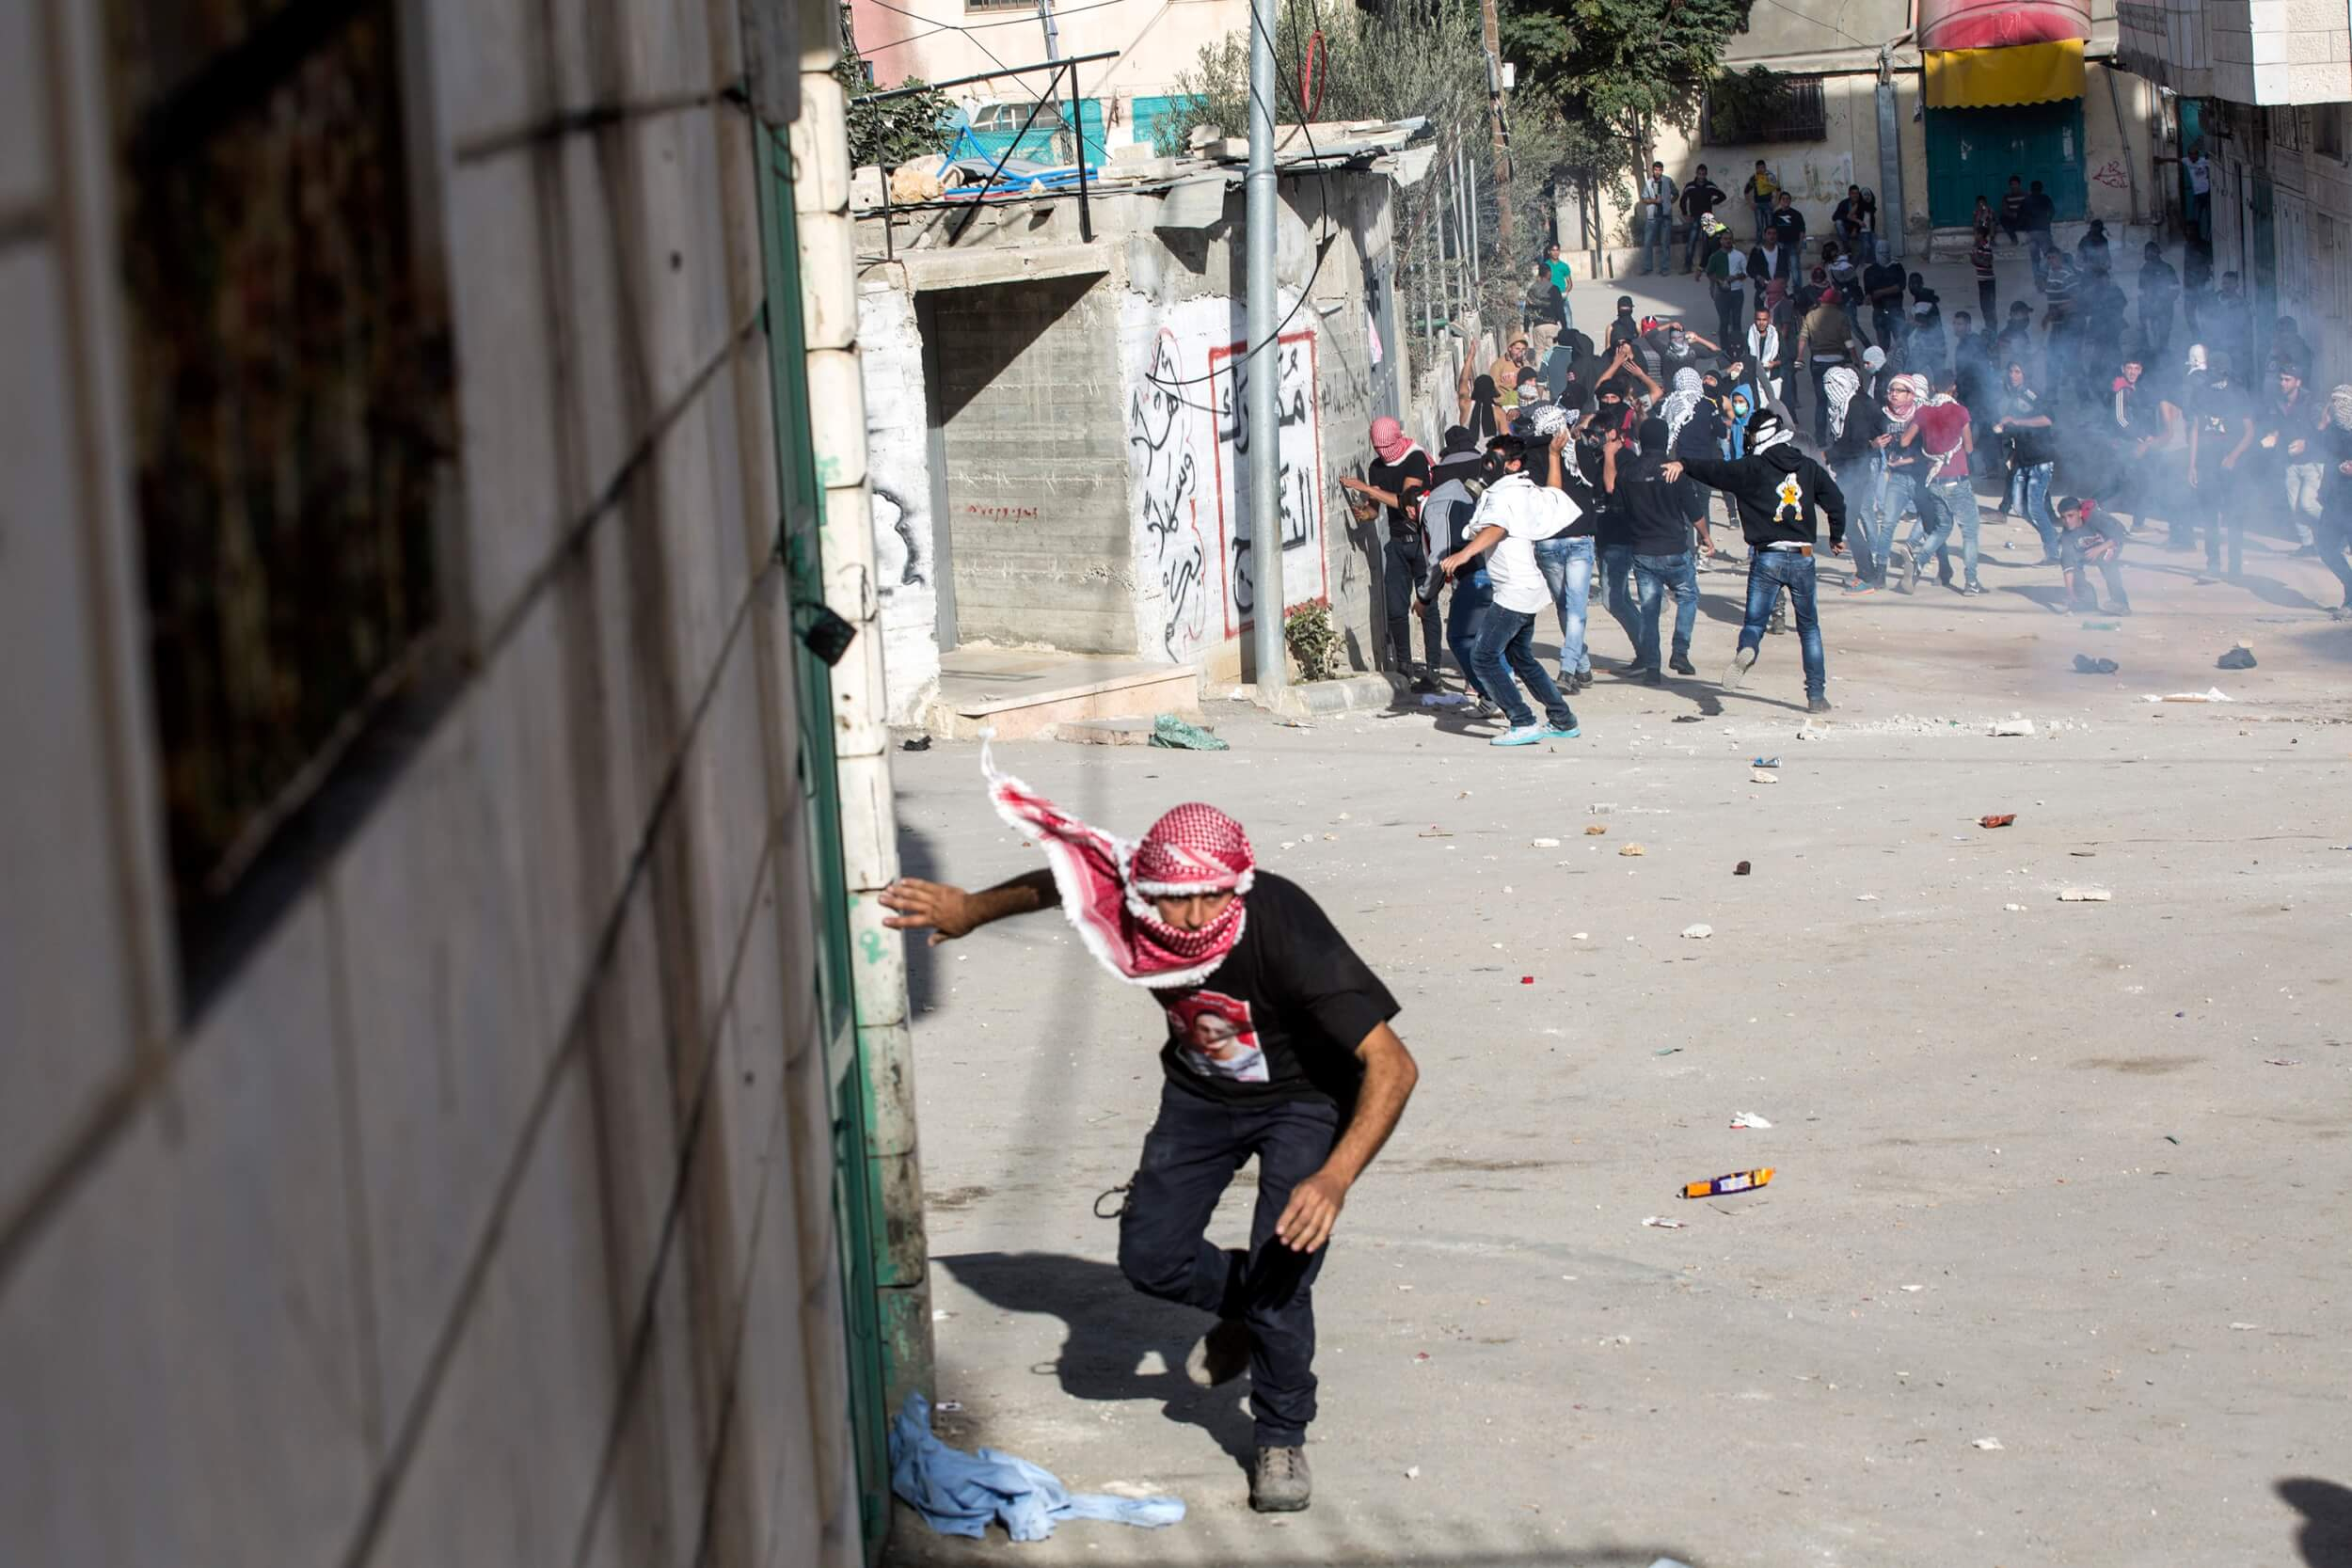 Palestinians take cover during clashes, al Arroub refugee camp